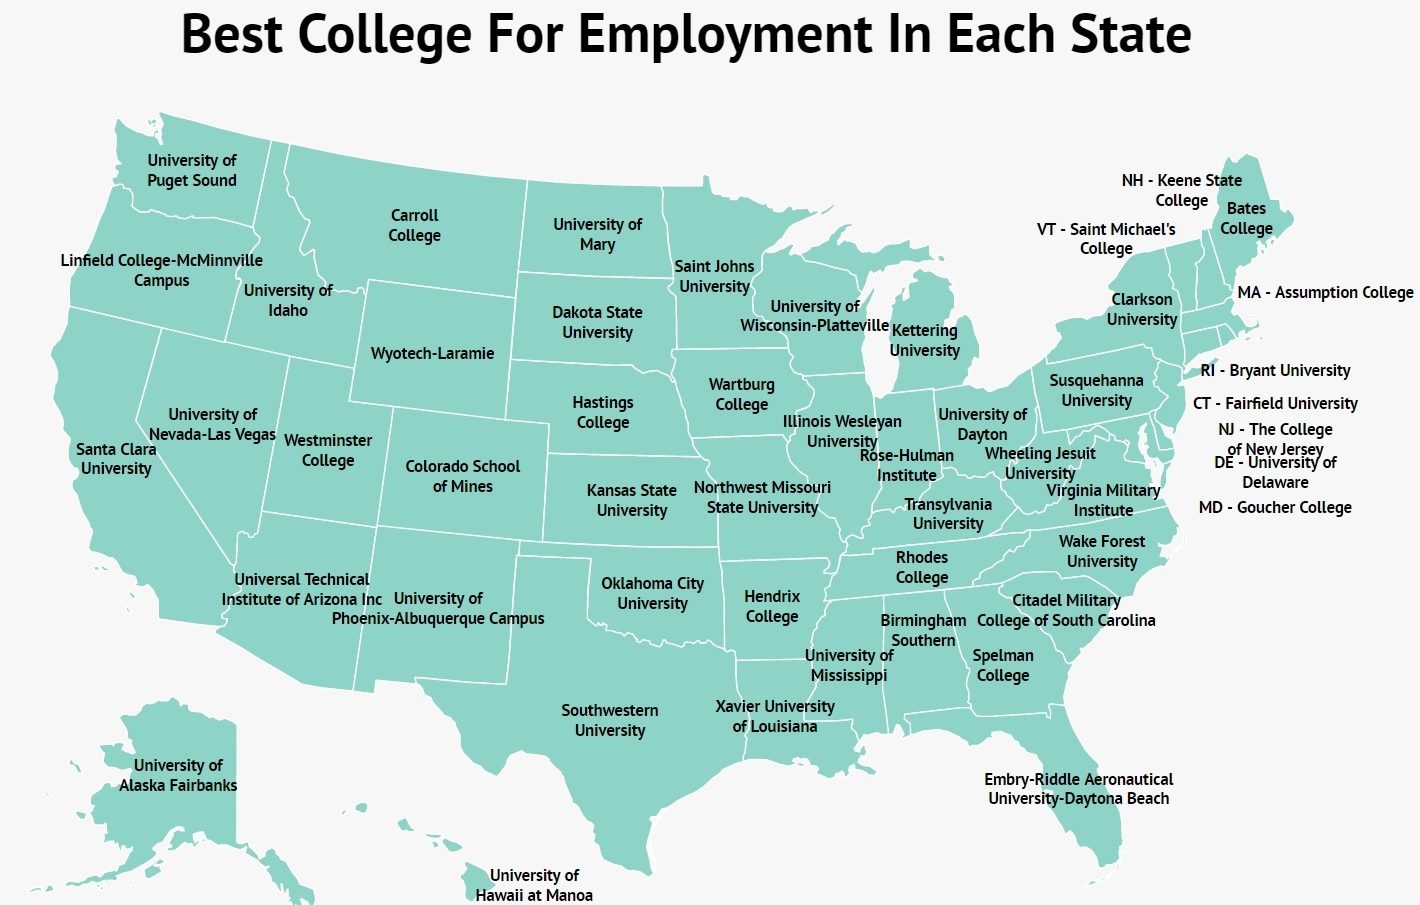 best-college-for-employment-in-each-state